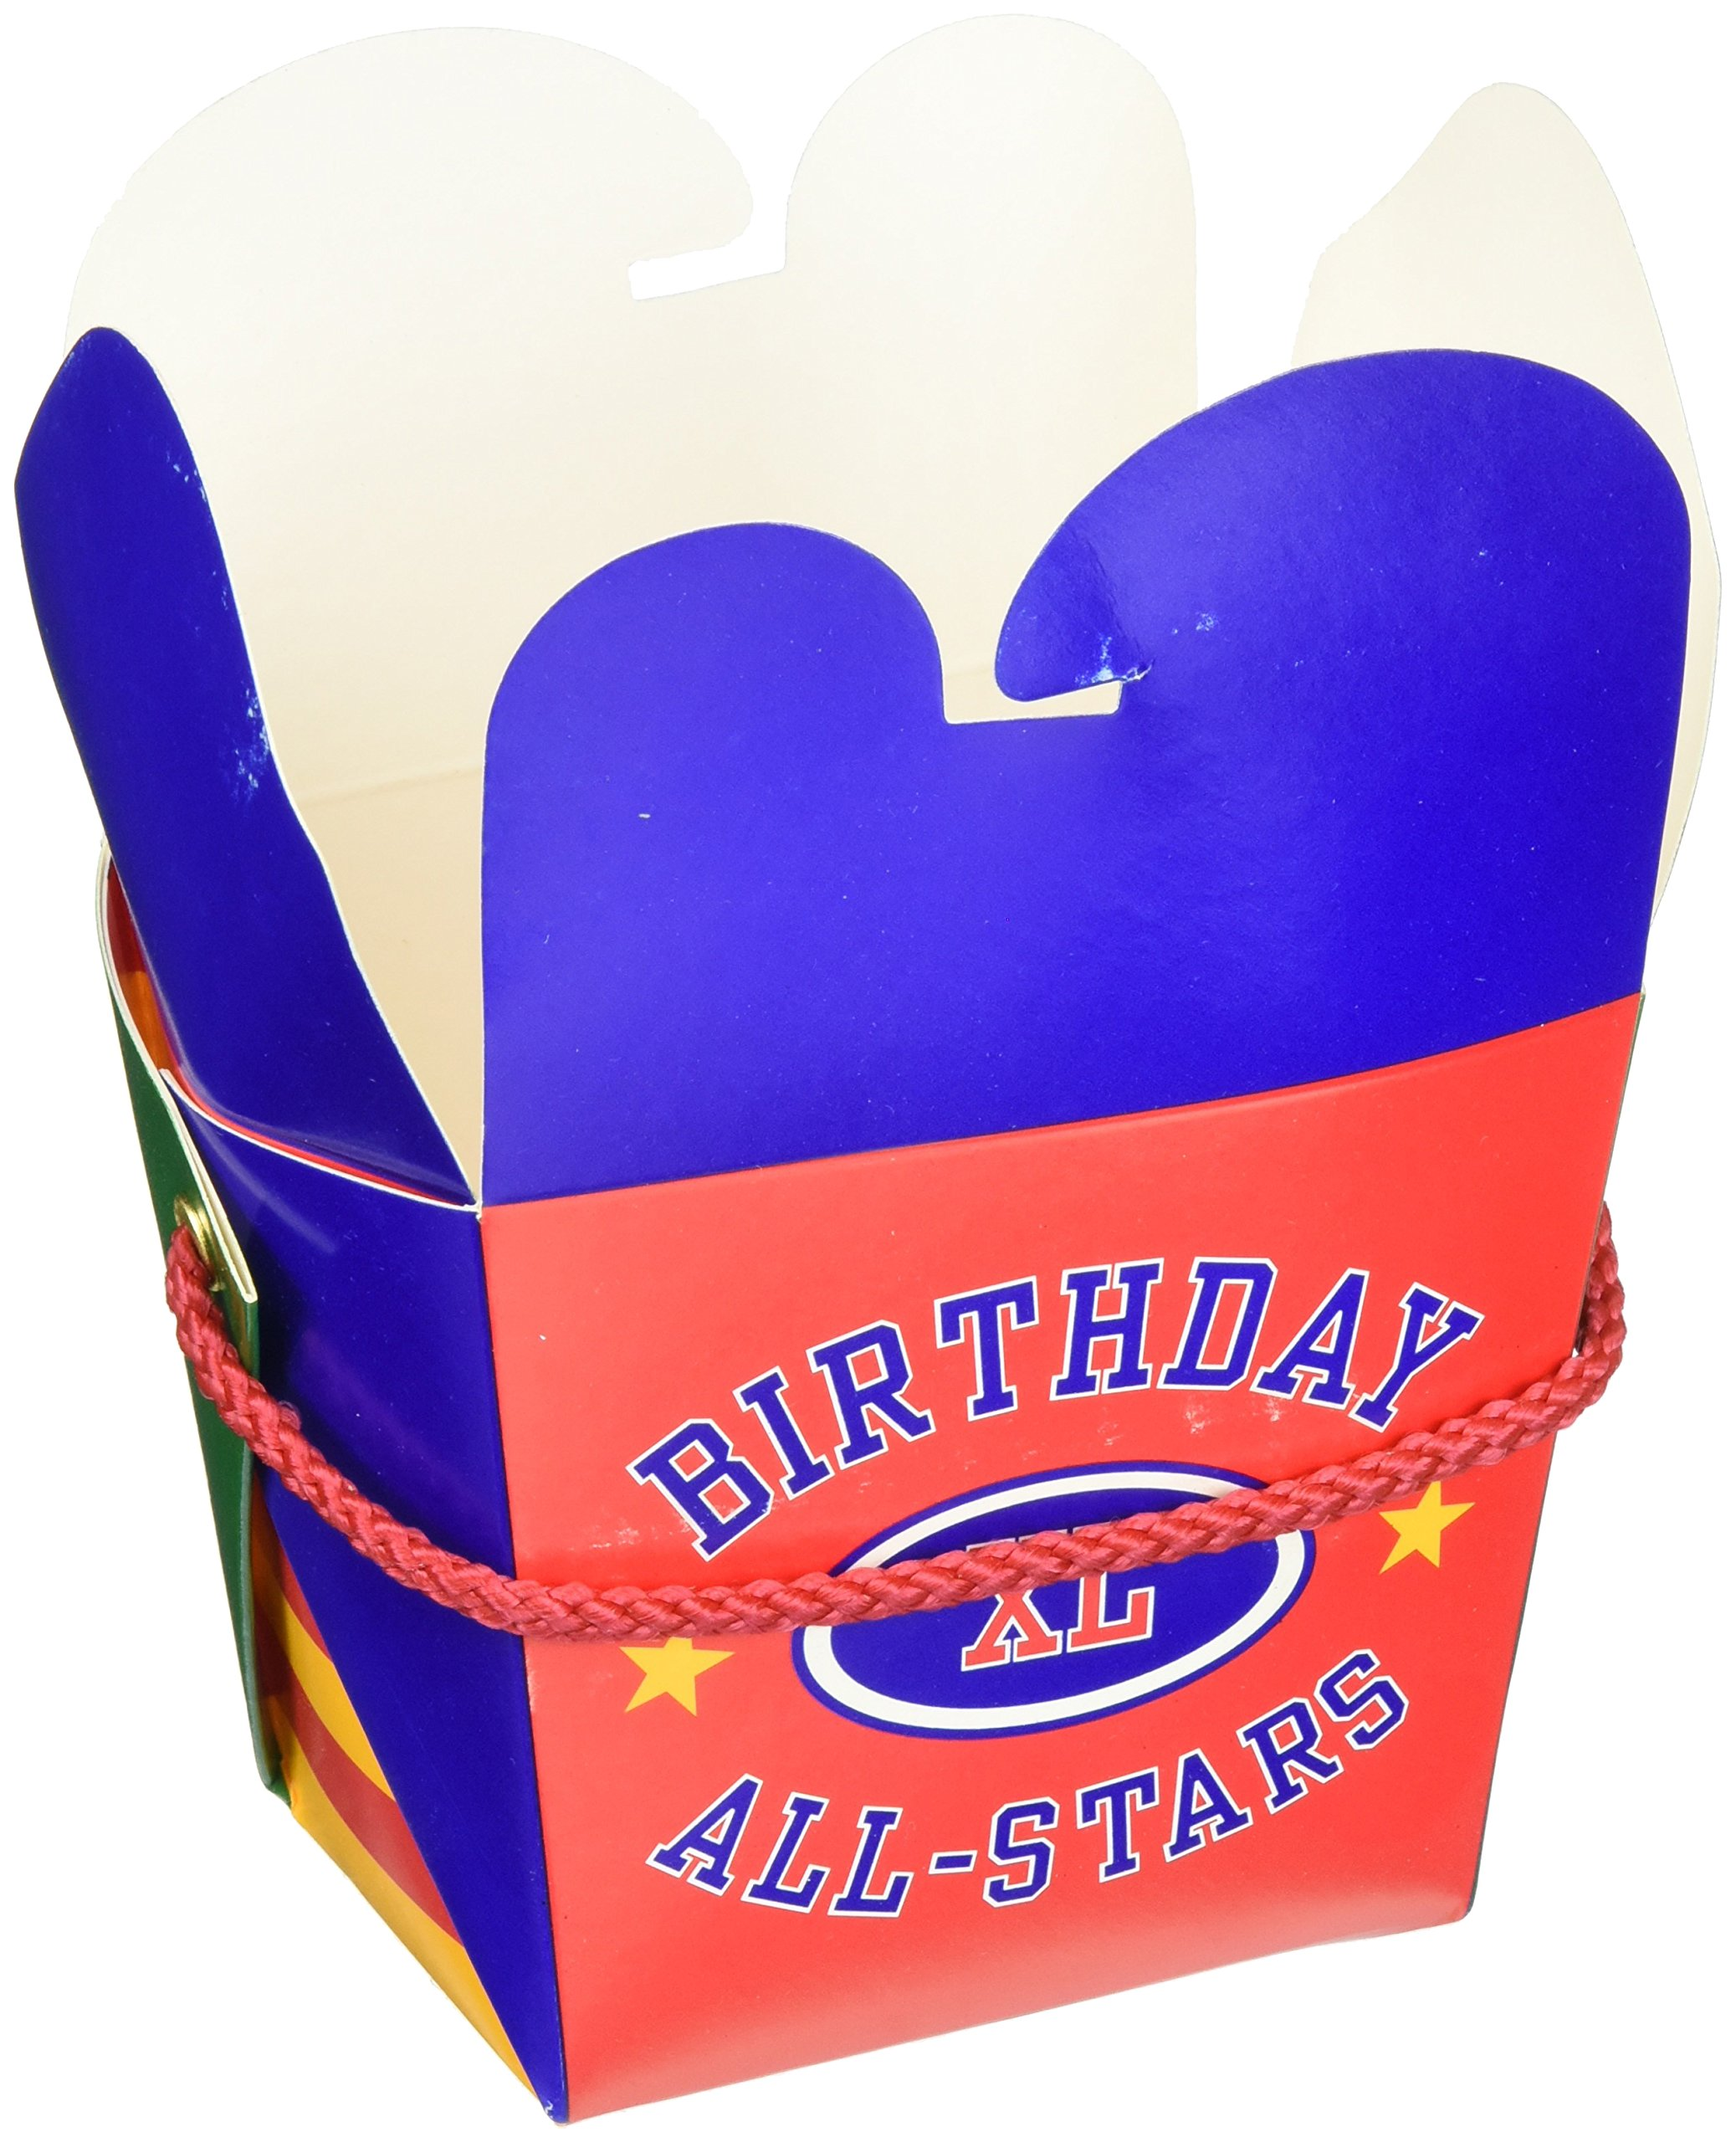 Amscan Party Ready Medium All Stars Varsity Take Out Style Favor Box, Multicolor, 4'' X 4'' X 3'' by Amscan